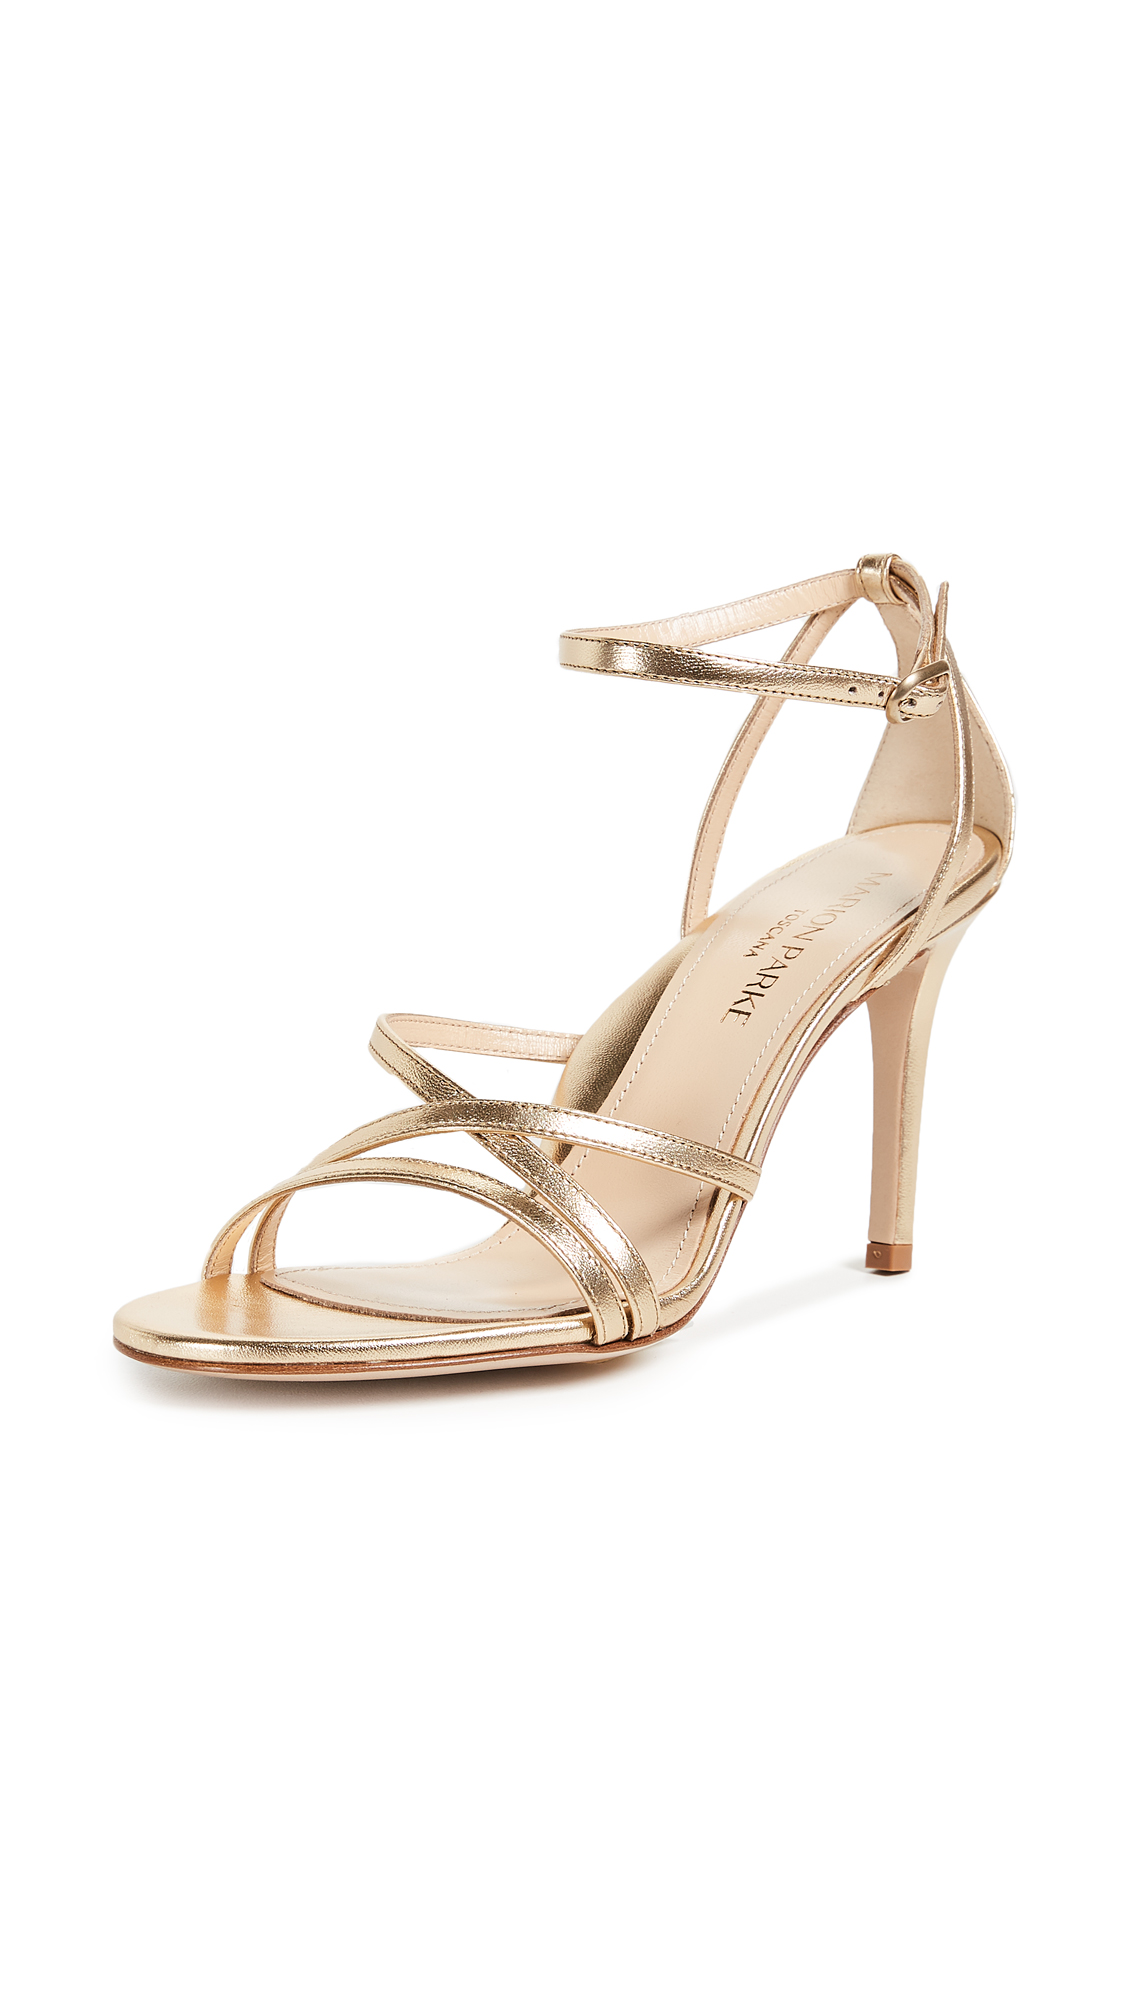 Marion Parke Lillian Sandals - Soft Gold